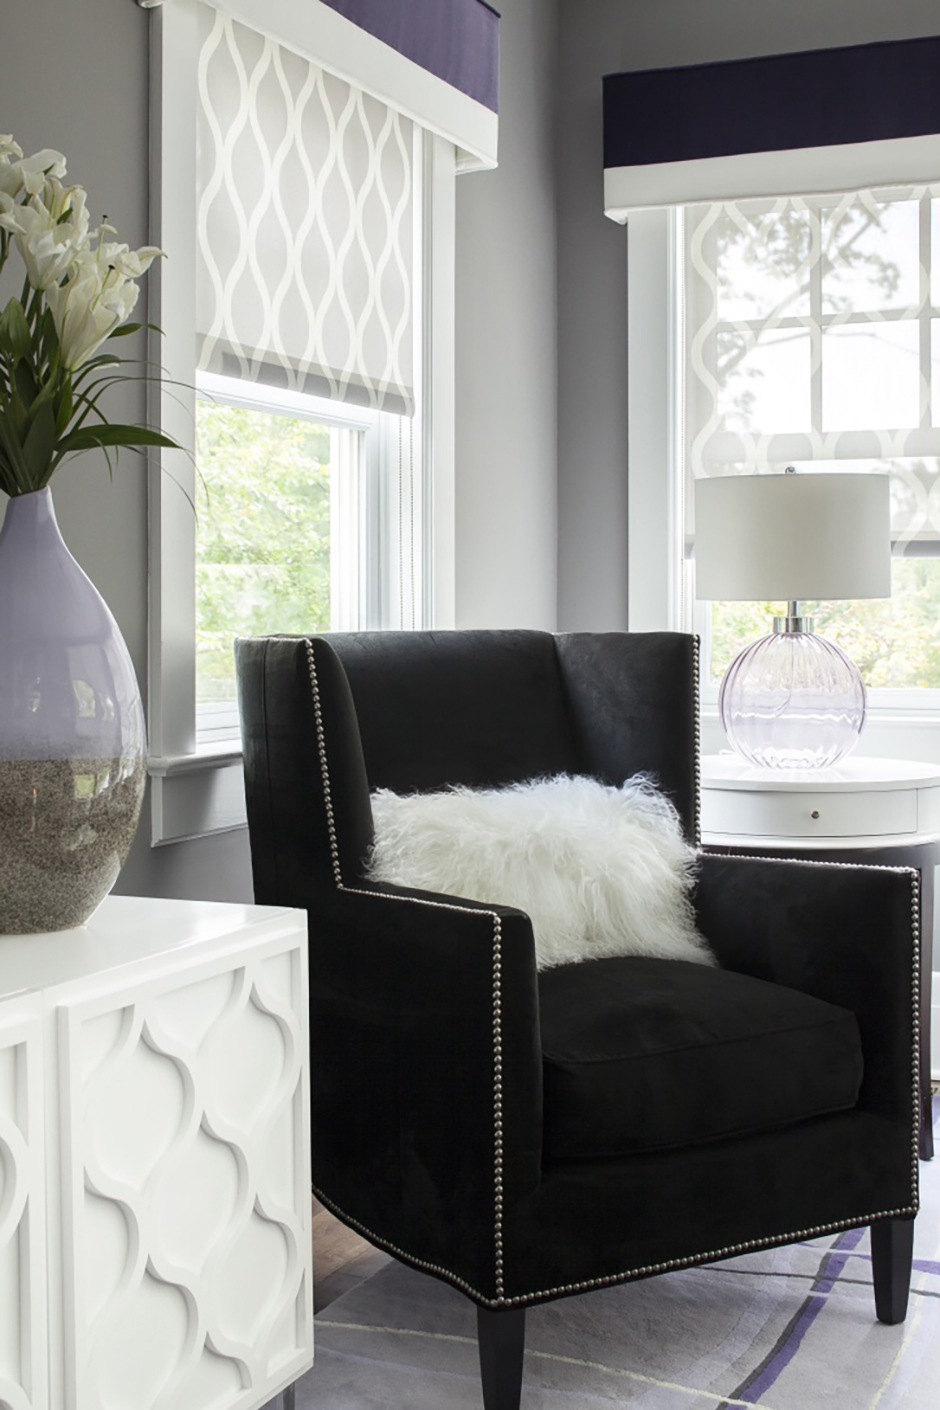 Online Shop Design Living Spaces - Karen B. Wolf Interiors